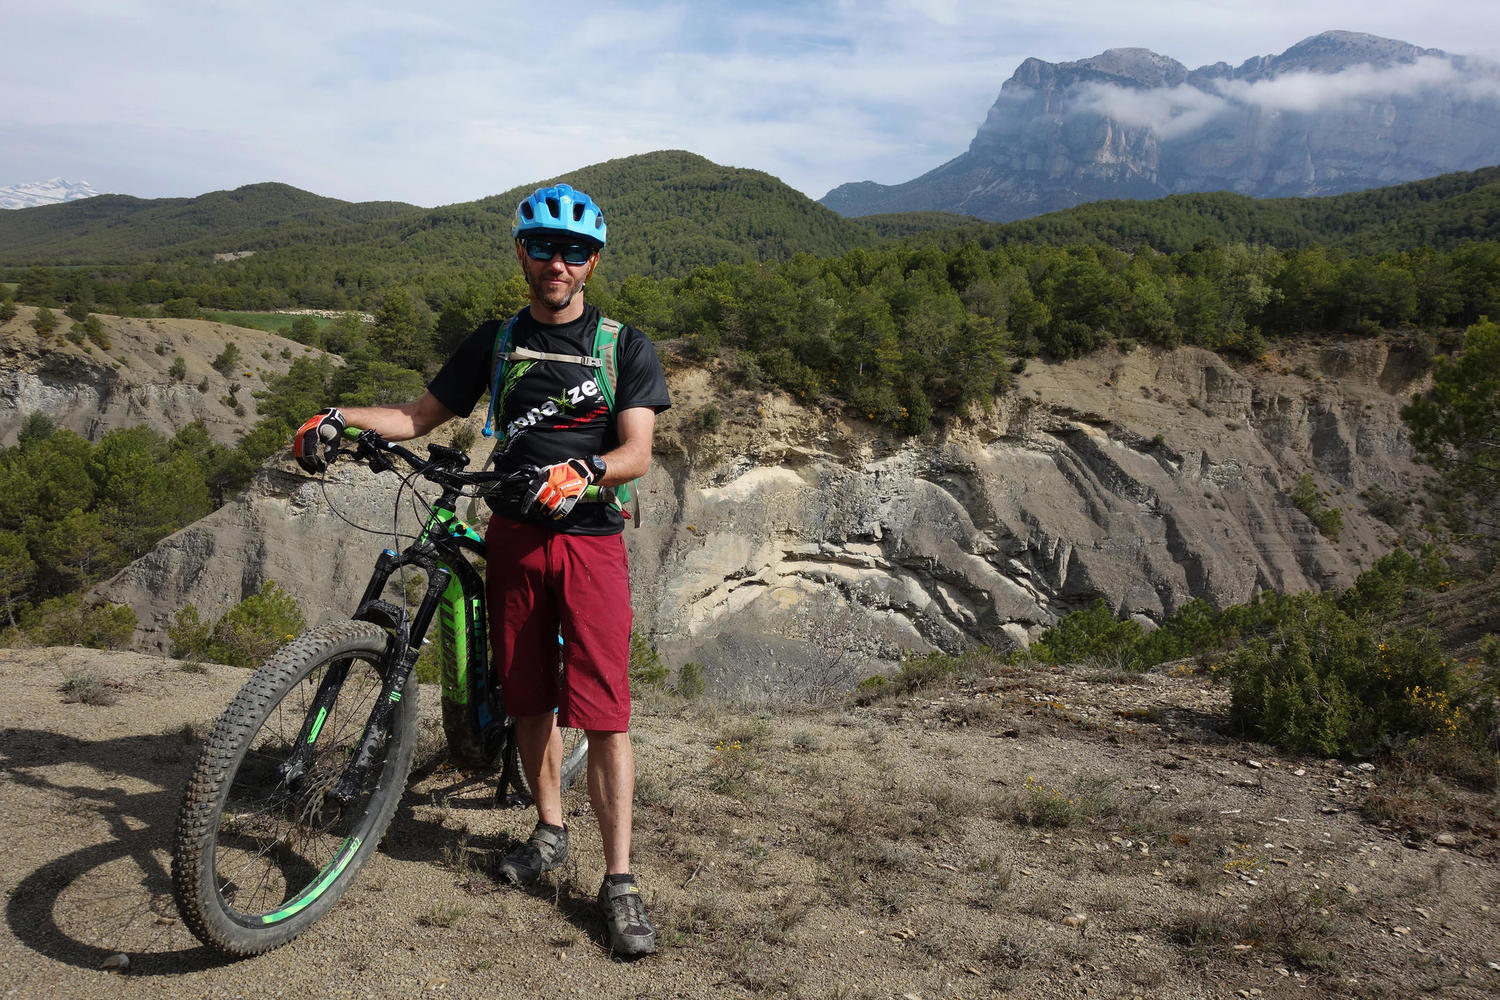 Guided eBiking with Sergio in the high Pyrenees